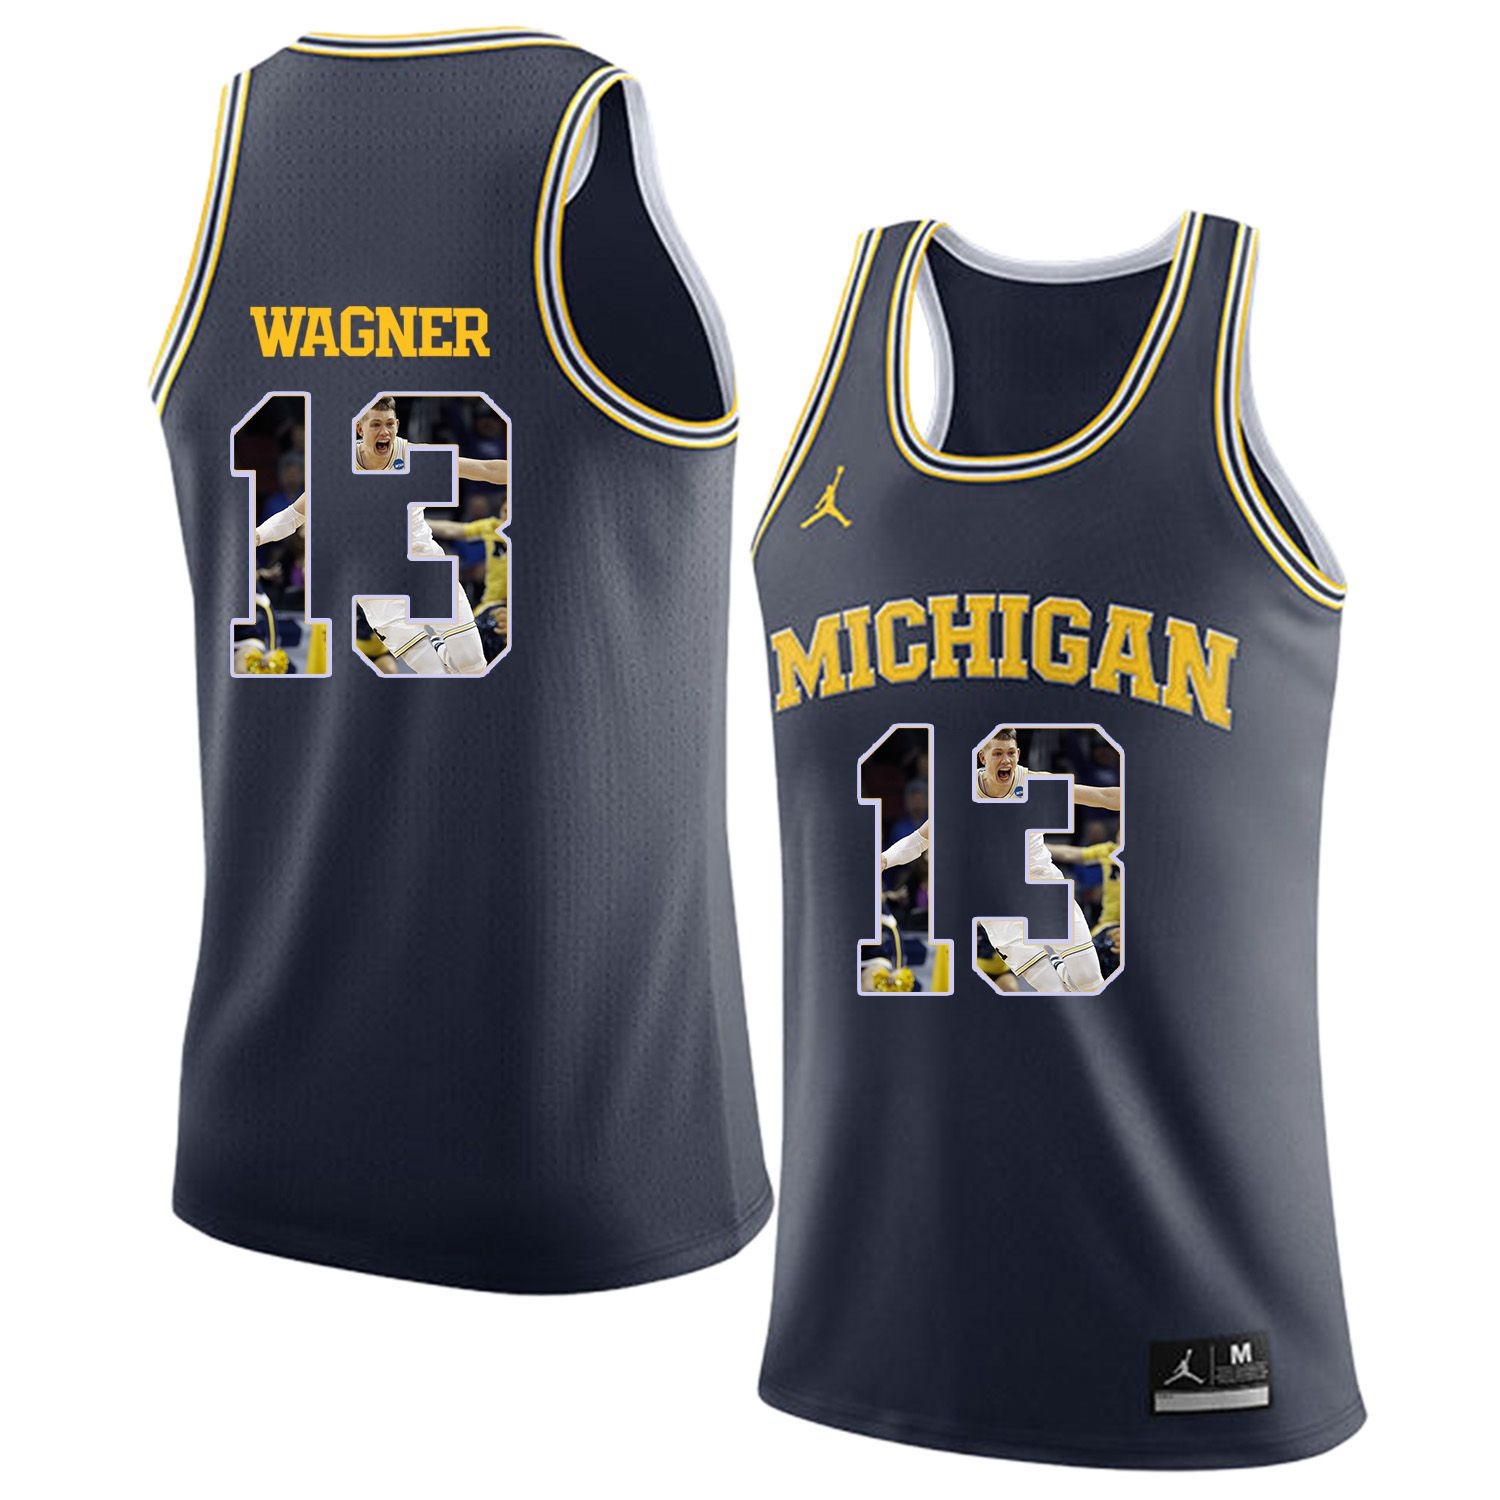 Men Jordan University of Michigan Basketball Navy 13 Wagner Fashion Edition Customized NCAA Jerseys